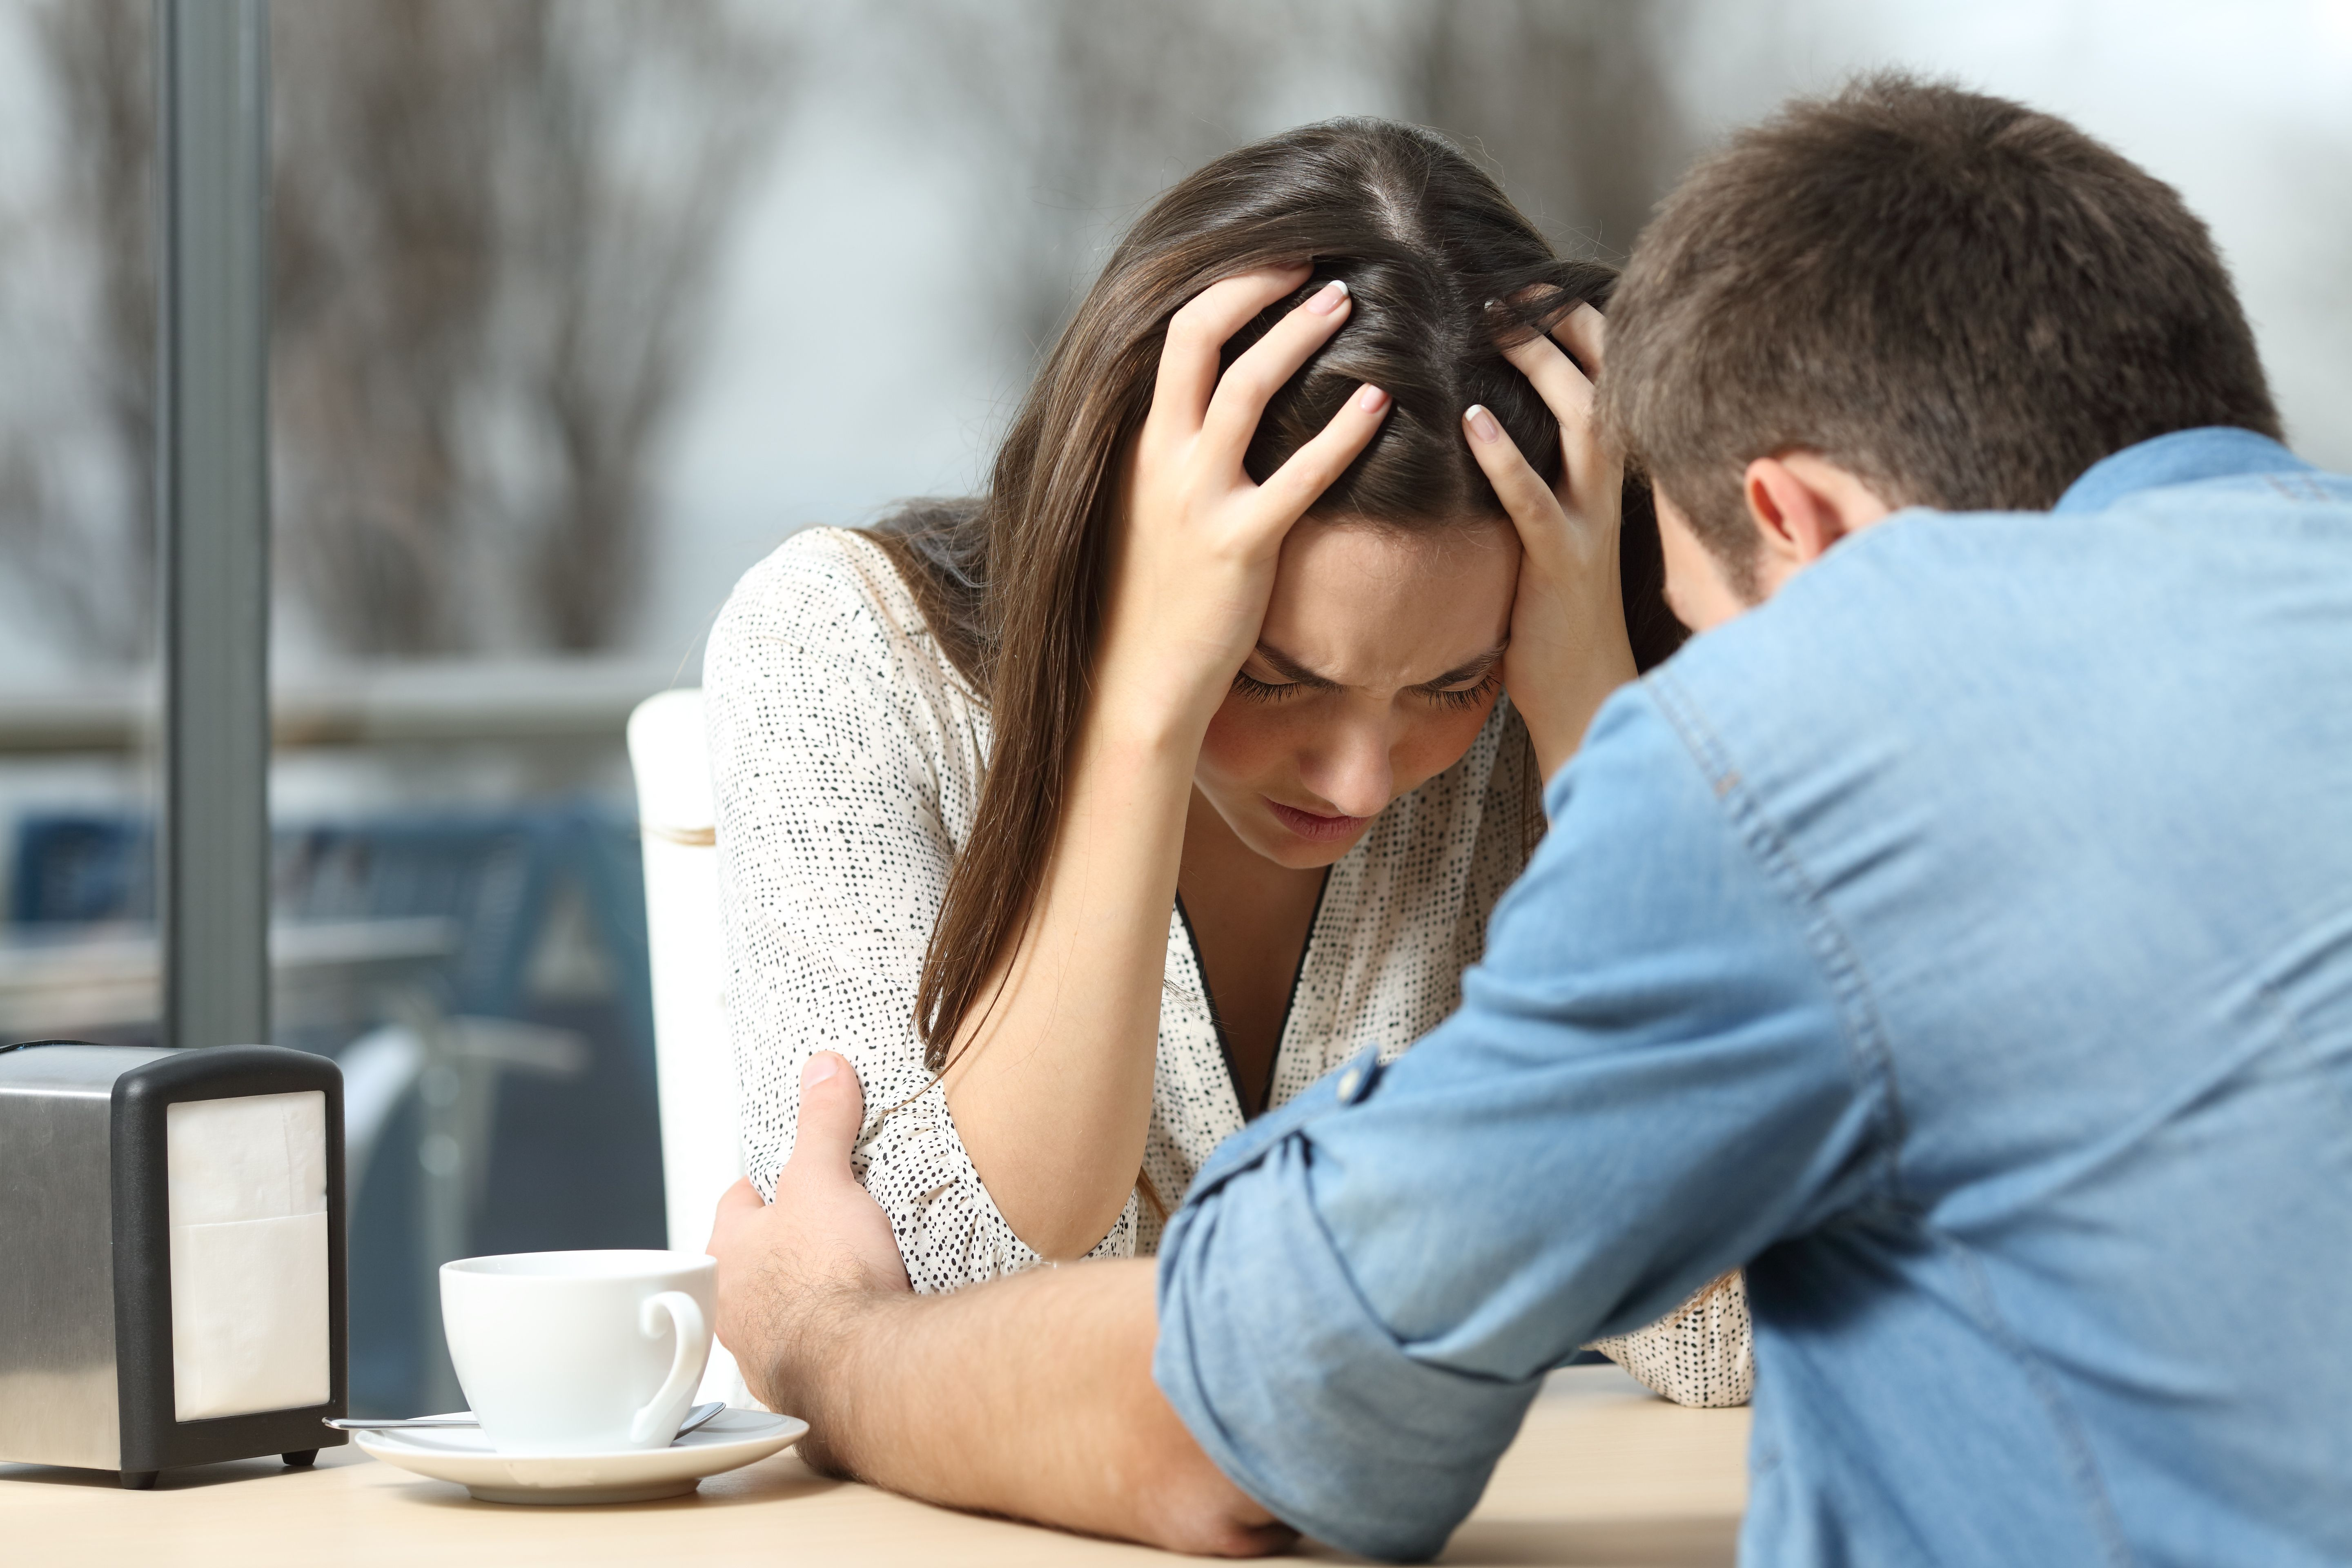 A man and a woman talking about an issue. | Source: Shutterstock